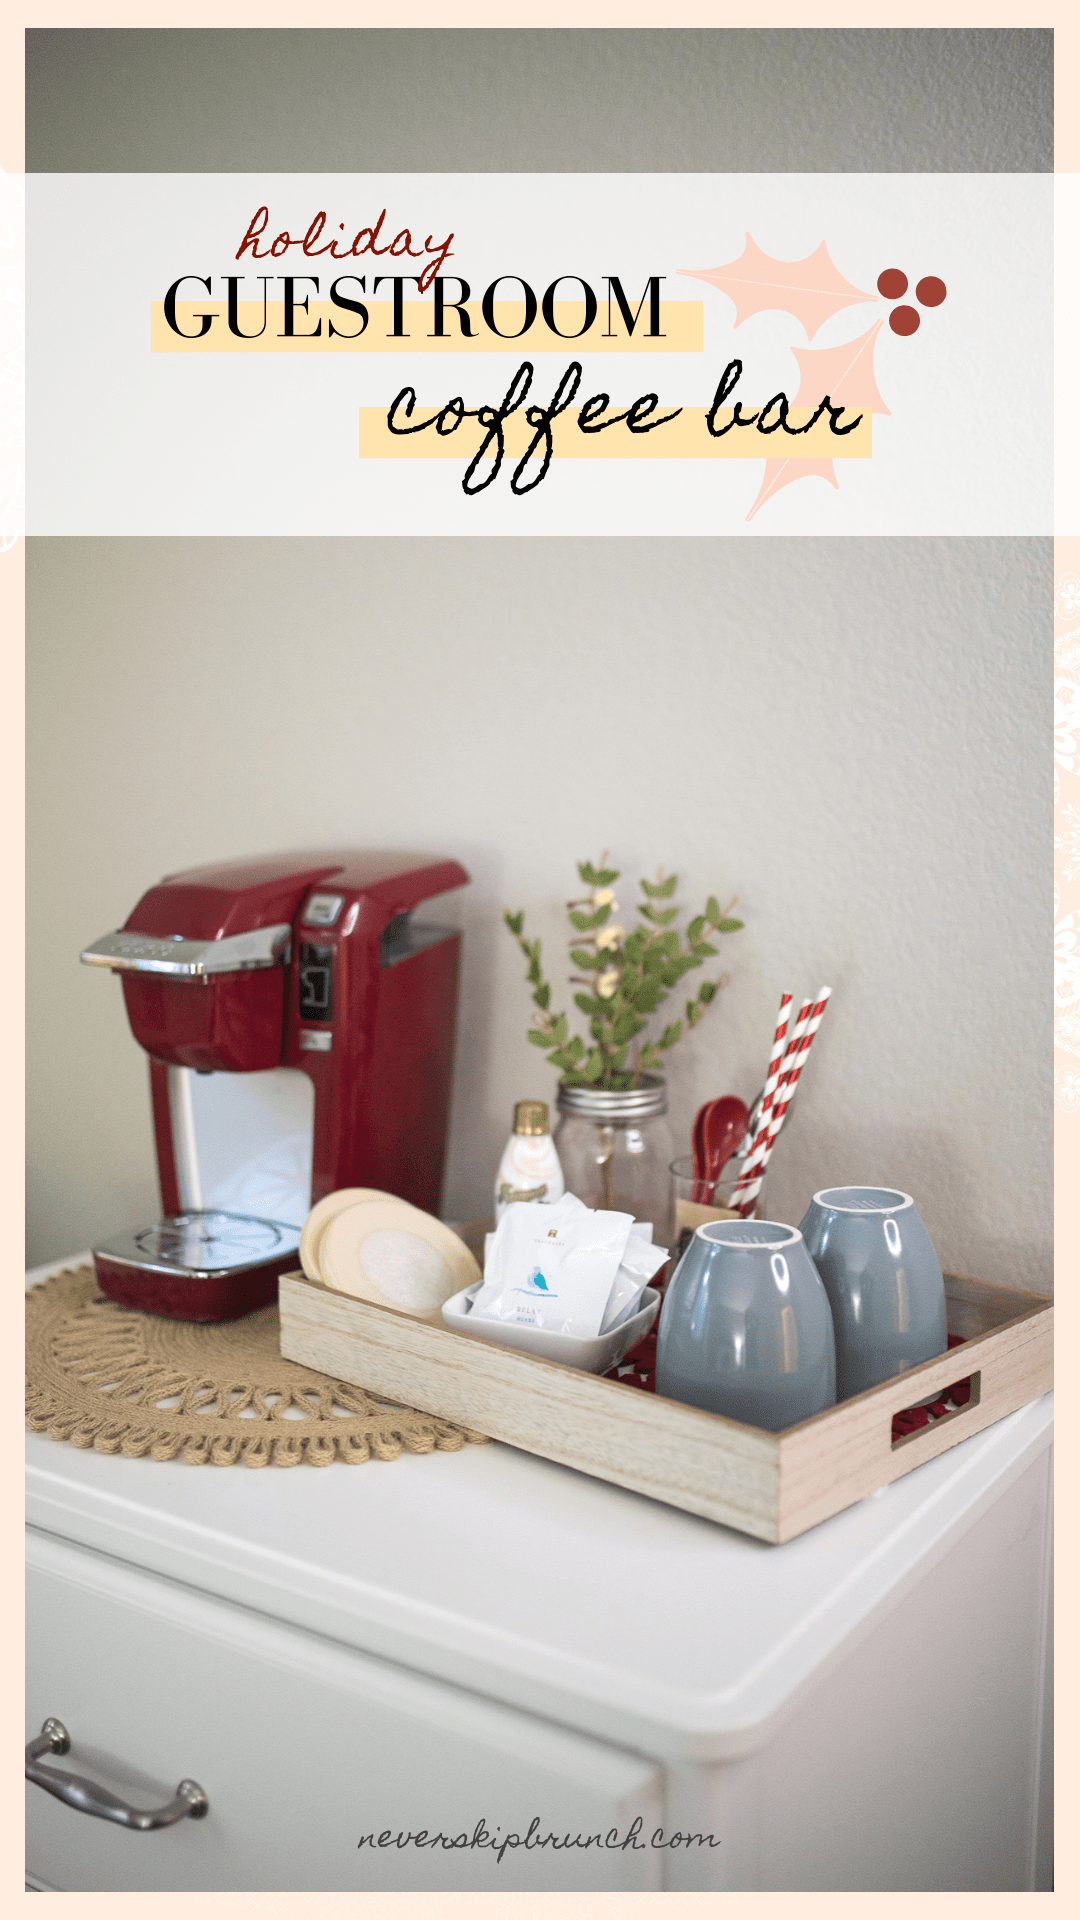 Add A Festive Guest Bedroom Coffee Bar For Your Holiday Guests Never Skip Brunch Guest Bedroom Decor Home Coffee Stations Coffee Bars In Kitchen